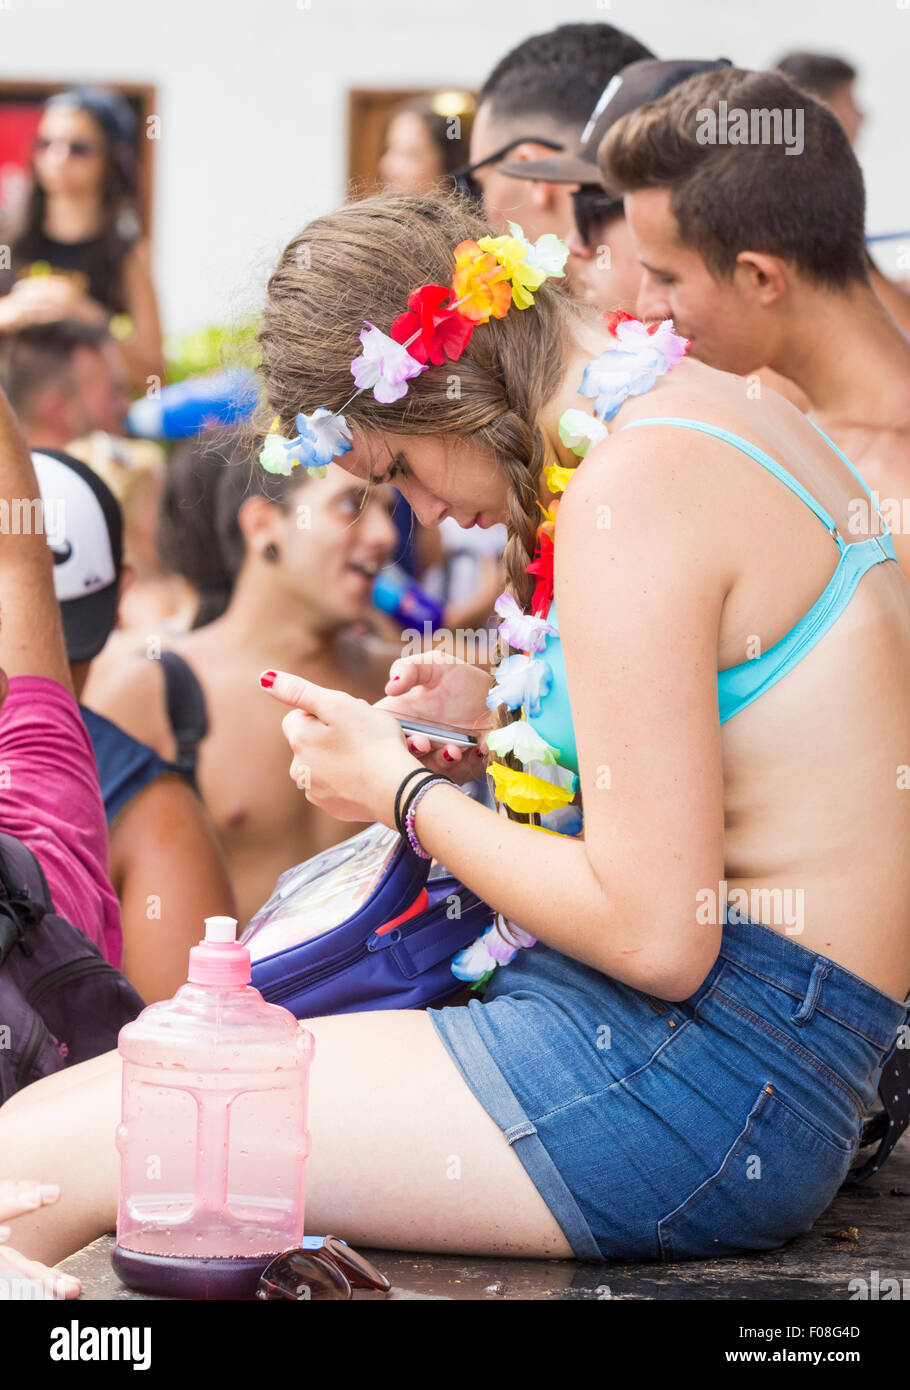 Young woman using mobile phone at festival, oblivious to the loud music and crowds of people. - Stock Image